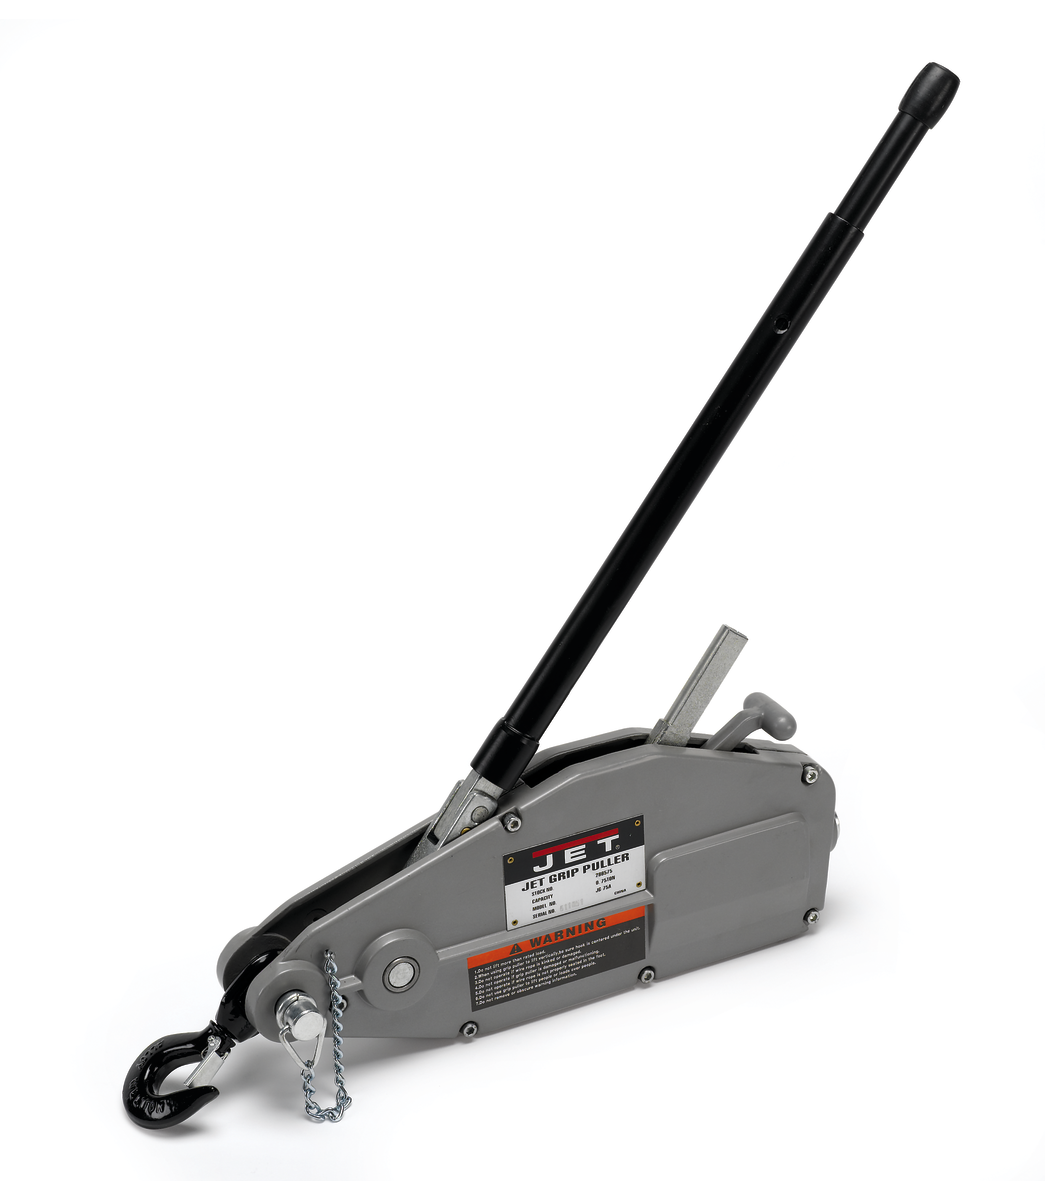 JG-300A, 3 Ton Grip Puller with Cable